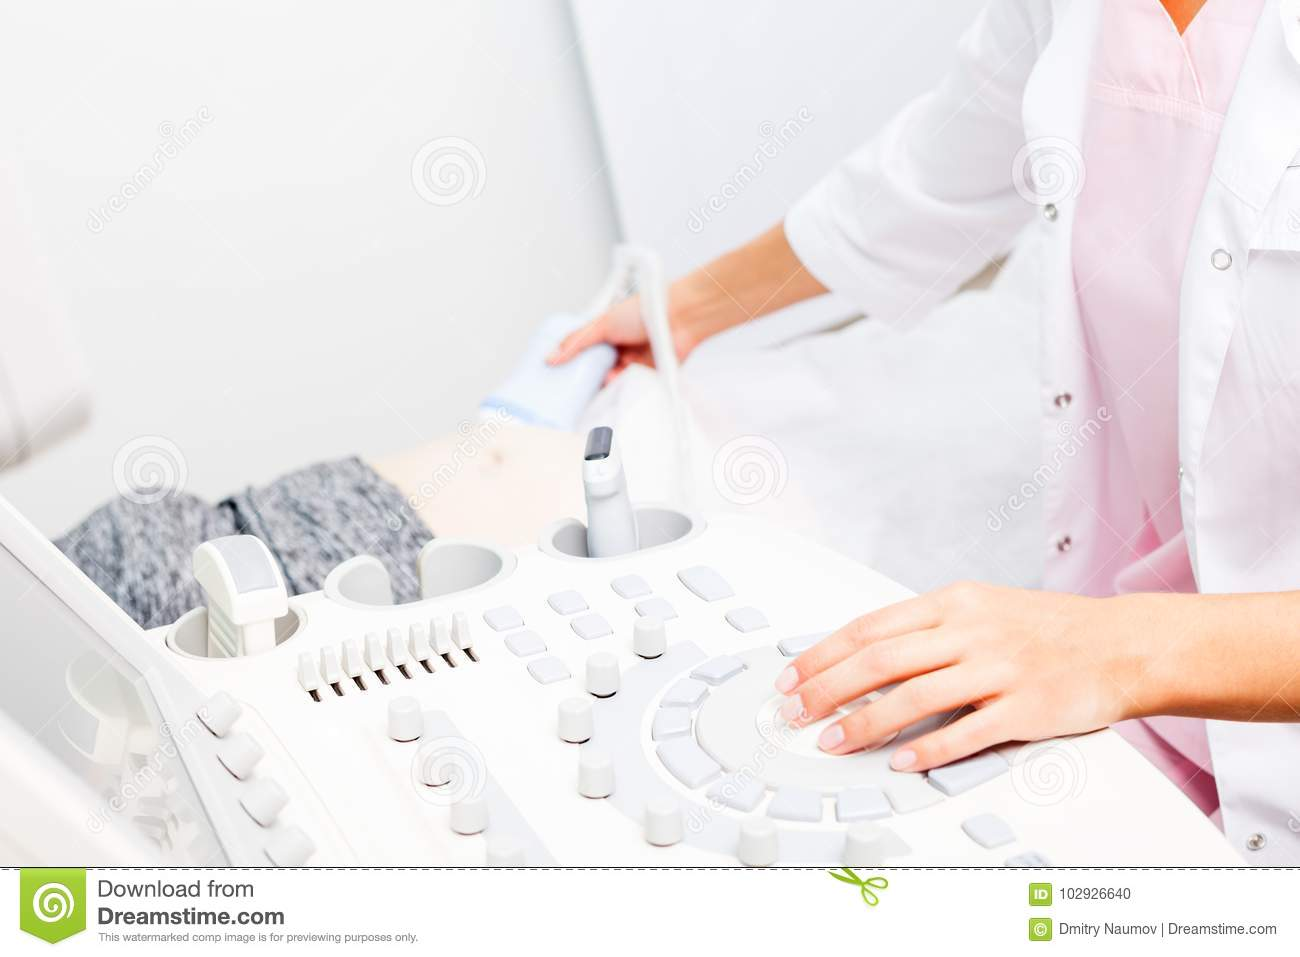 Doctor operating ultrasound machine performing obstetric ultrasonography